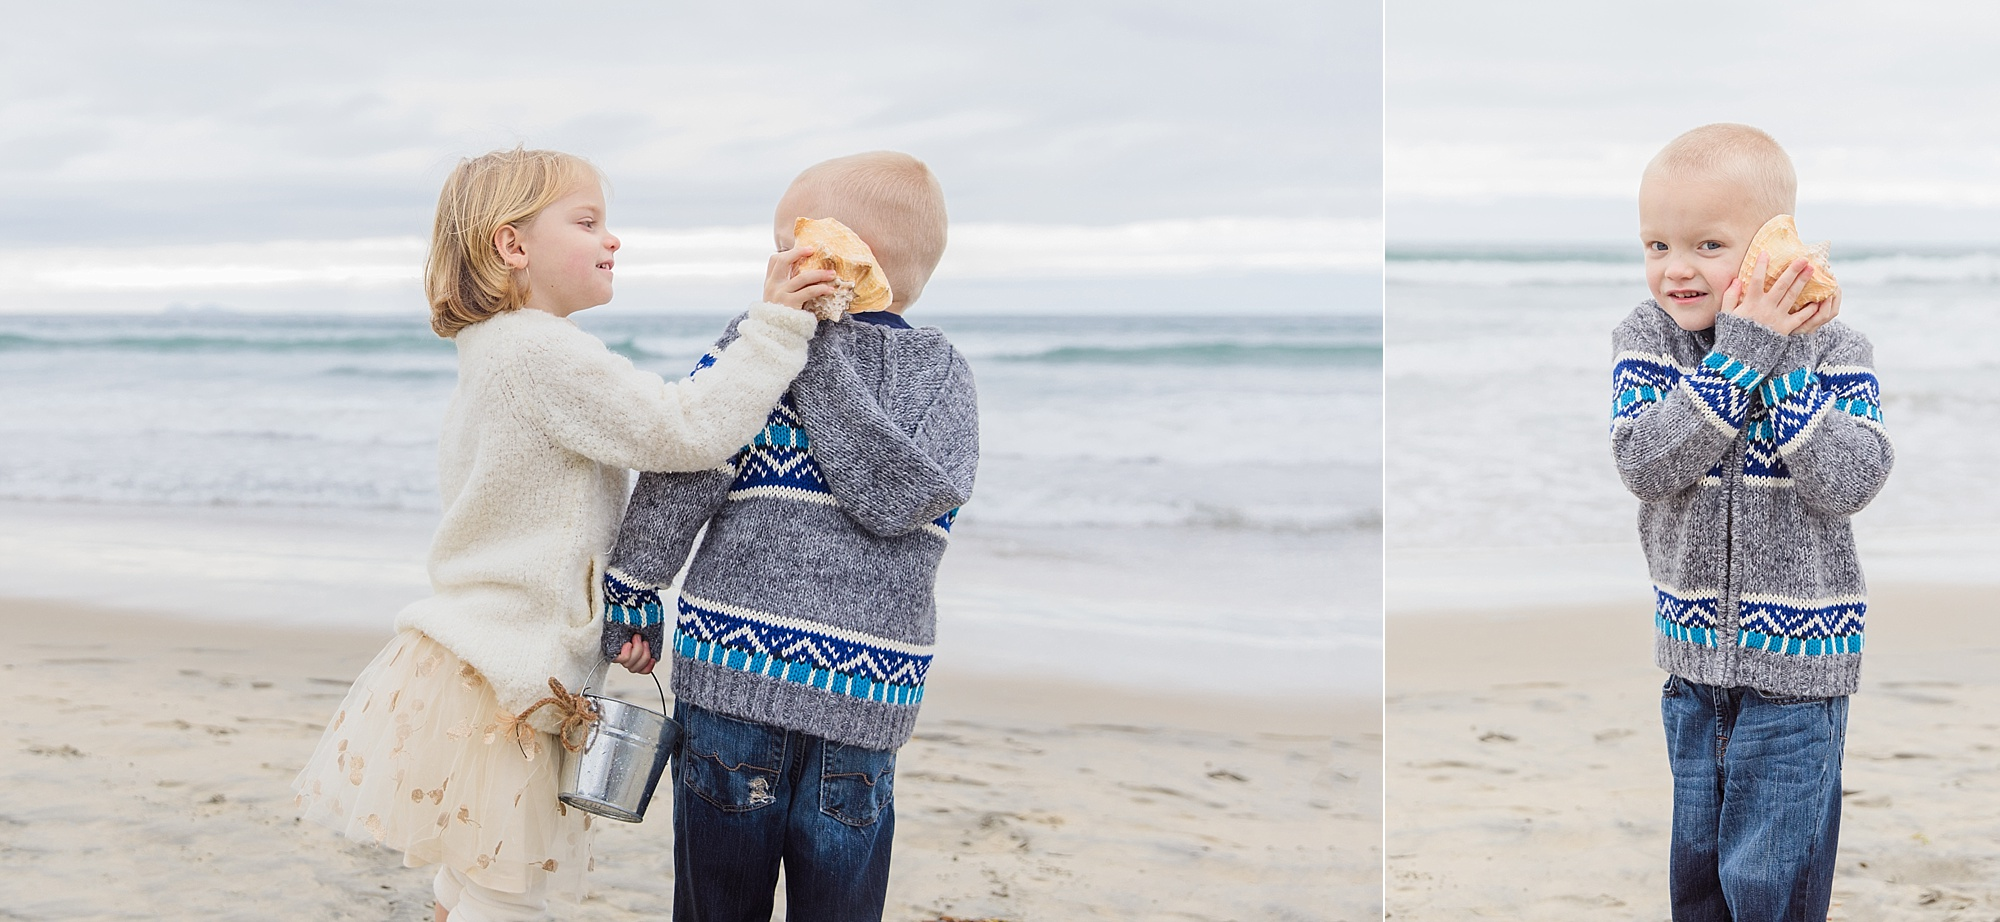 San Diego Family Photographer | Twins on the Beach